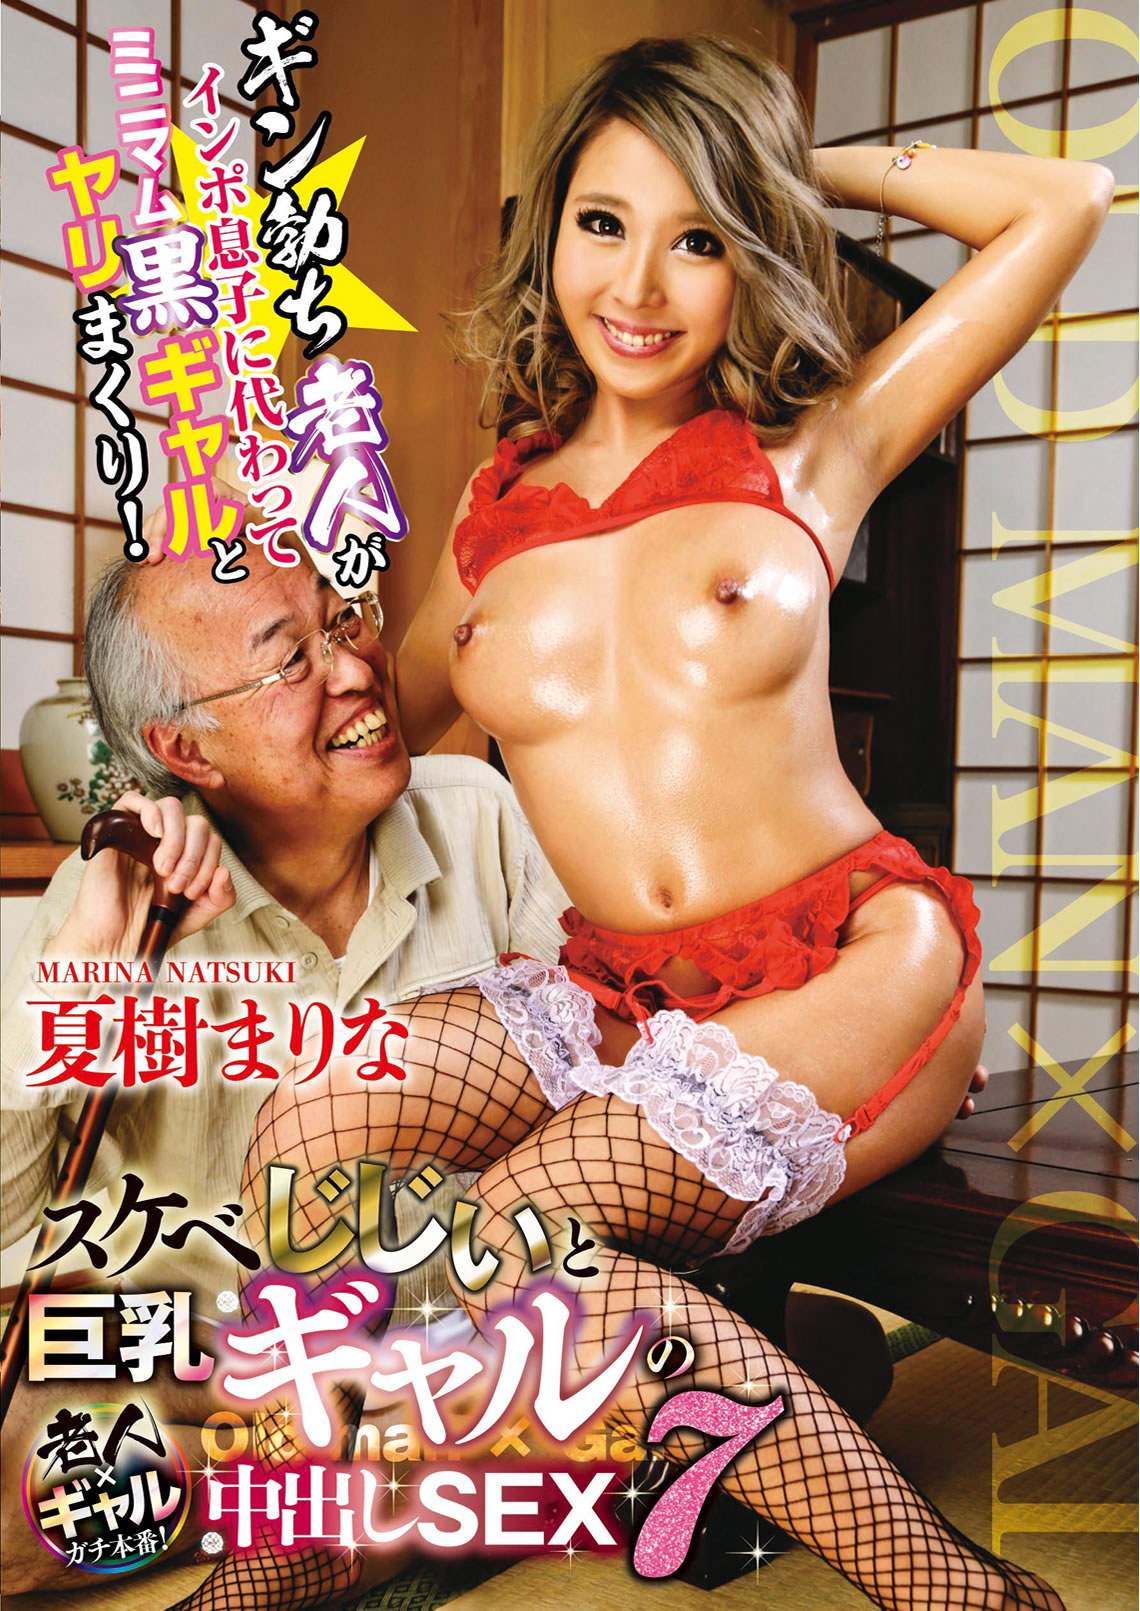 A Lewd Old Man And Large Breasts Gal's Cream Pie Sex 7, Marina Natsuki